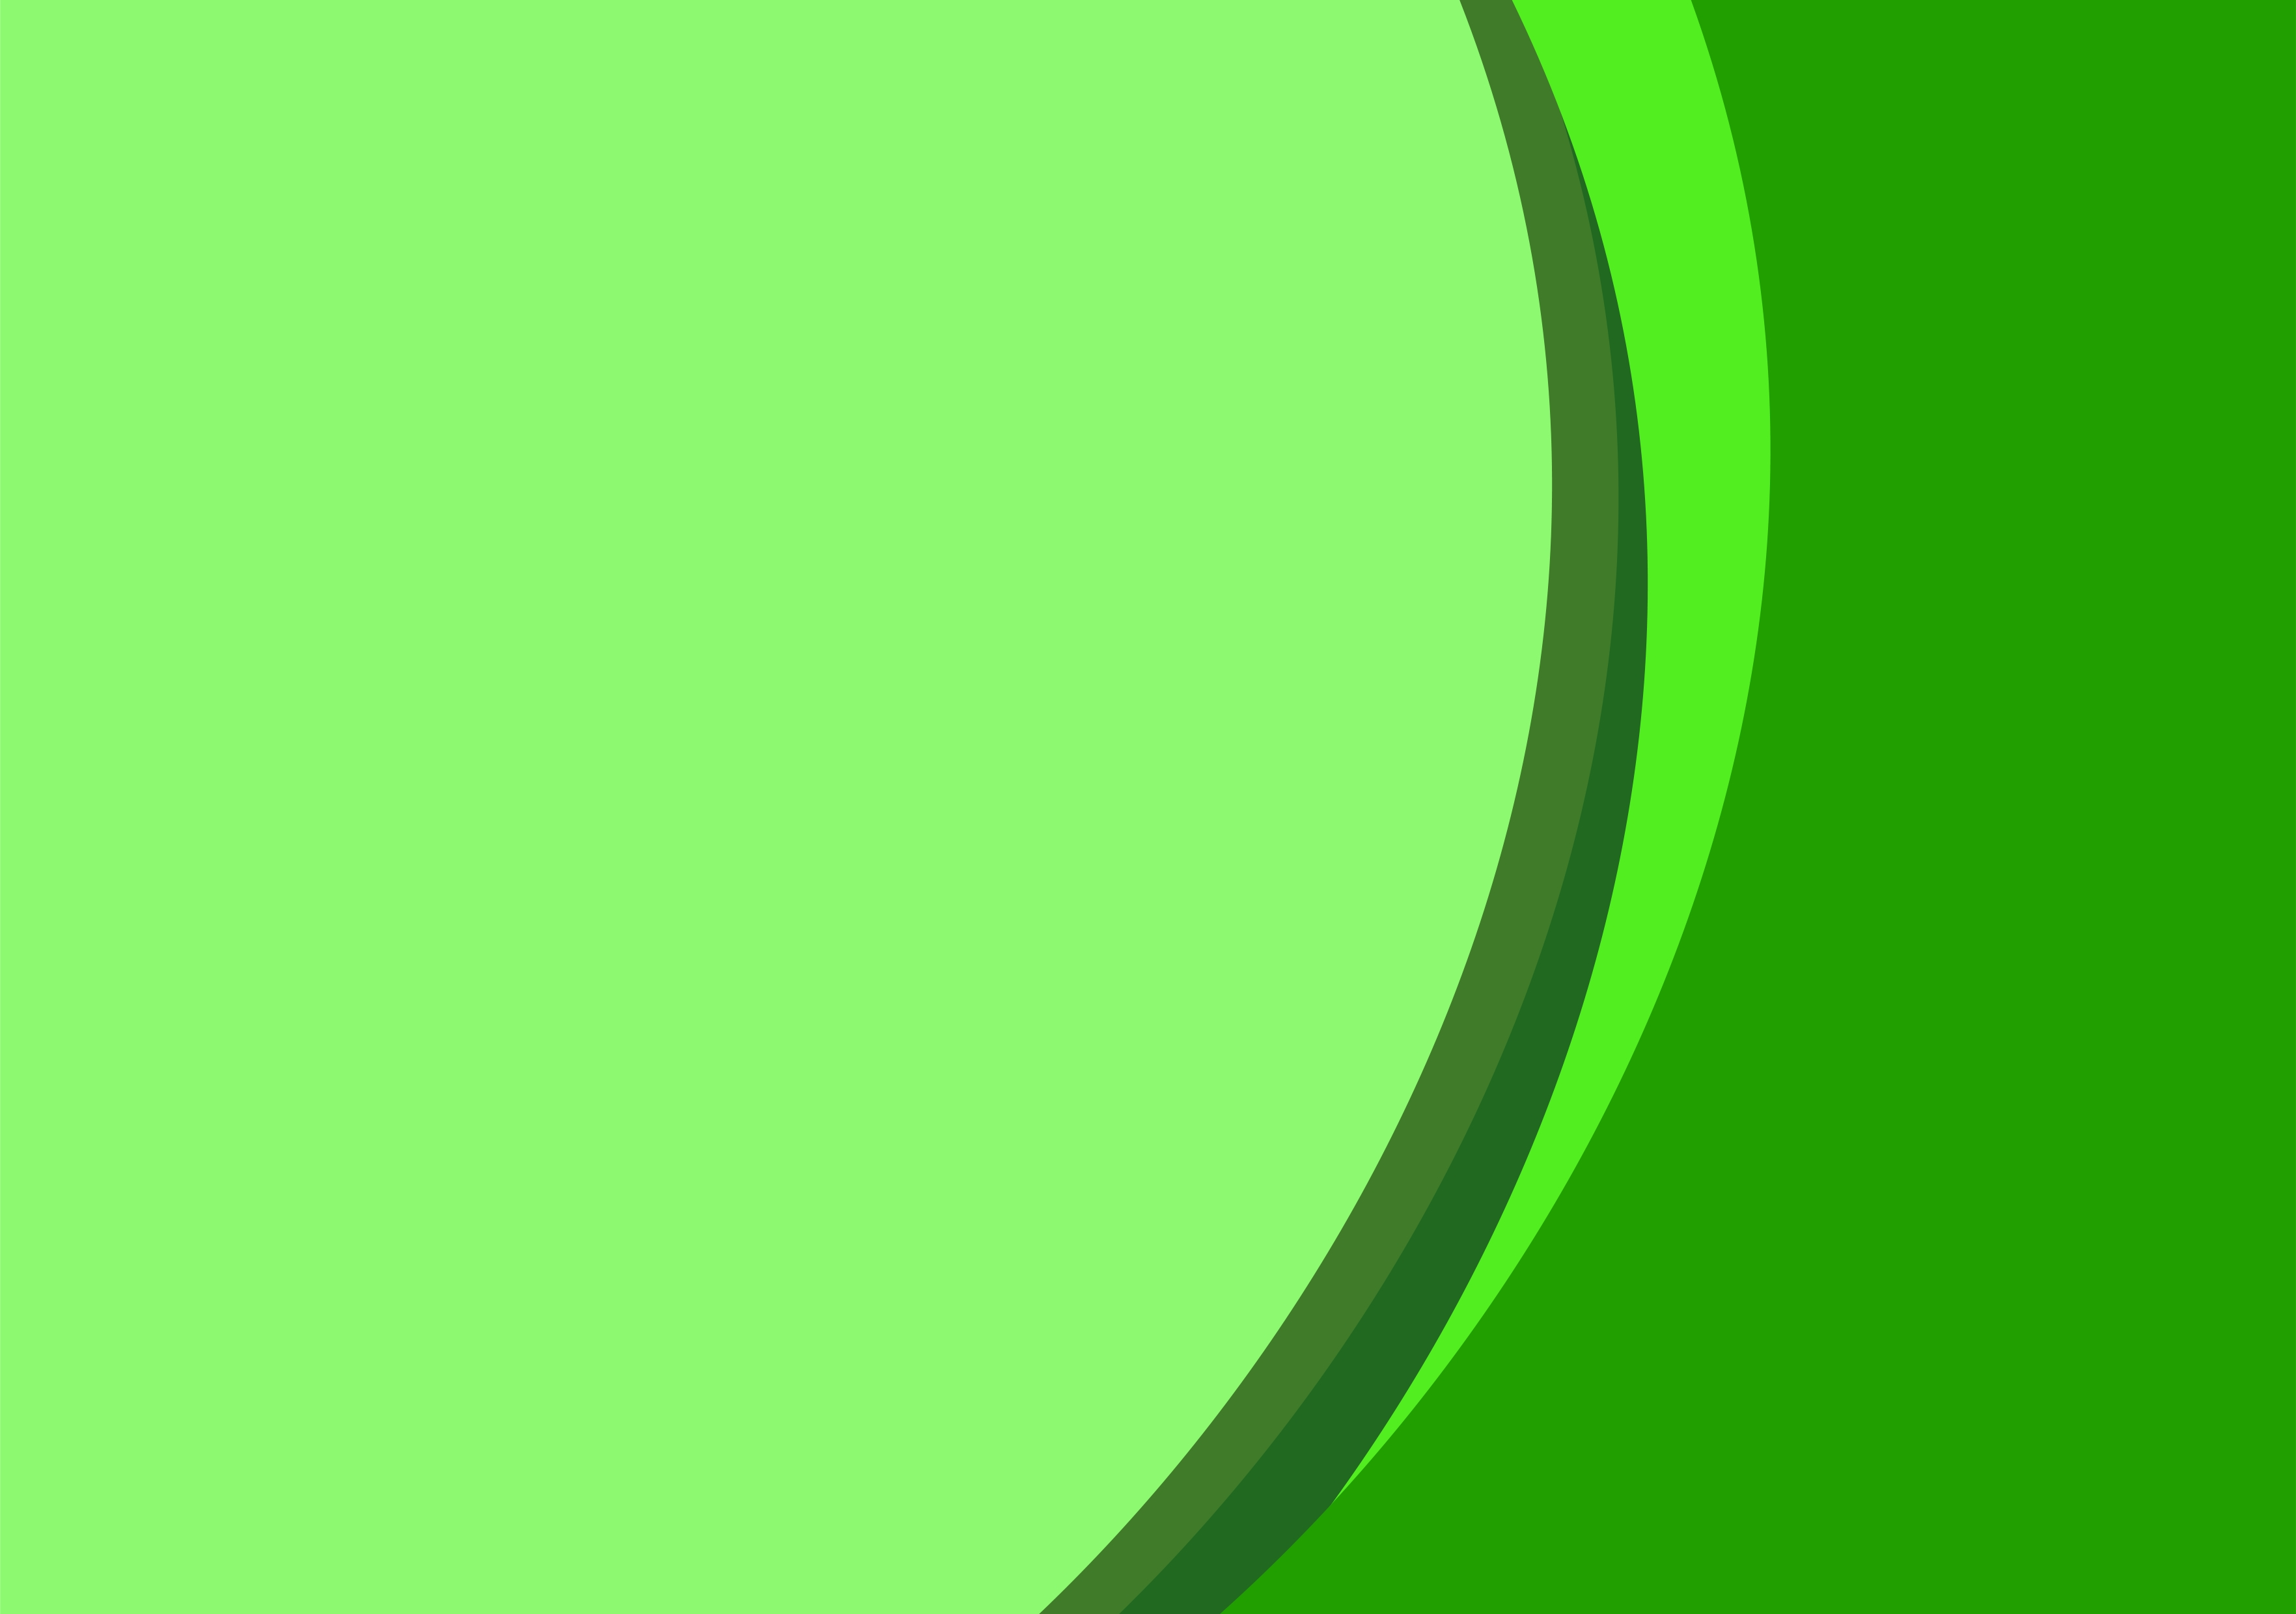 Free download Simple Green Background Images at Clkercom.